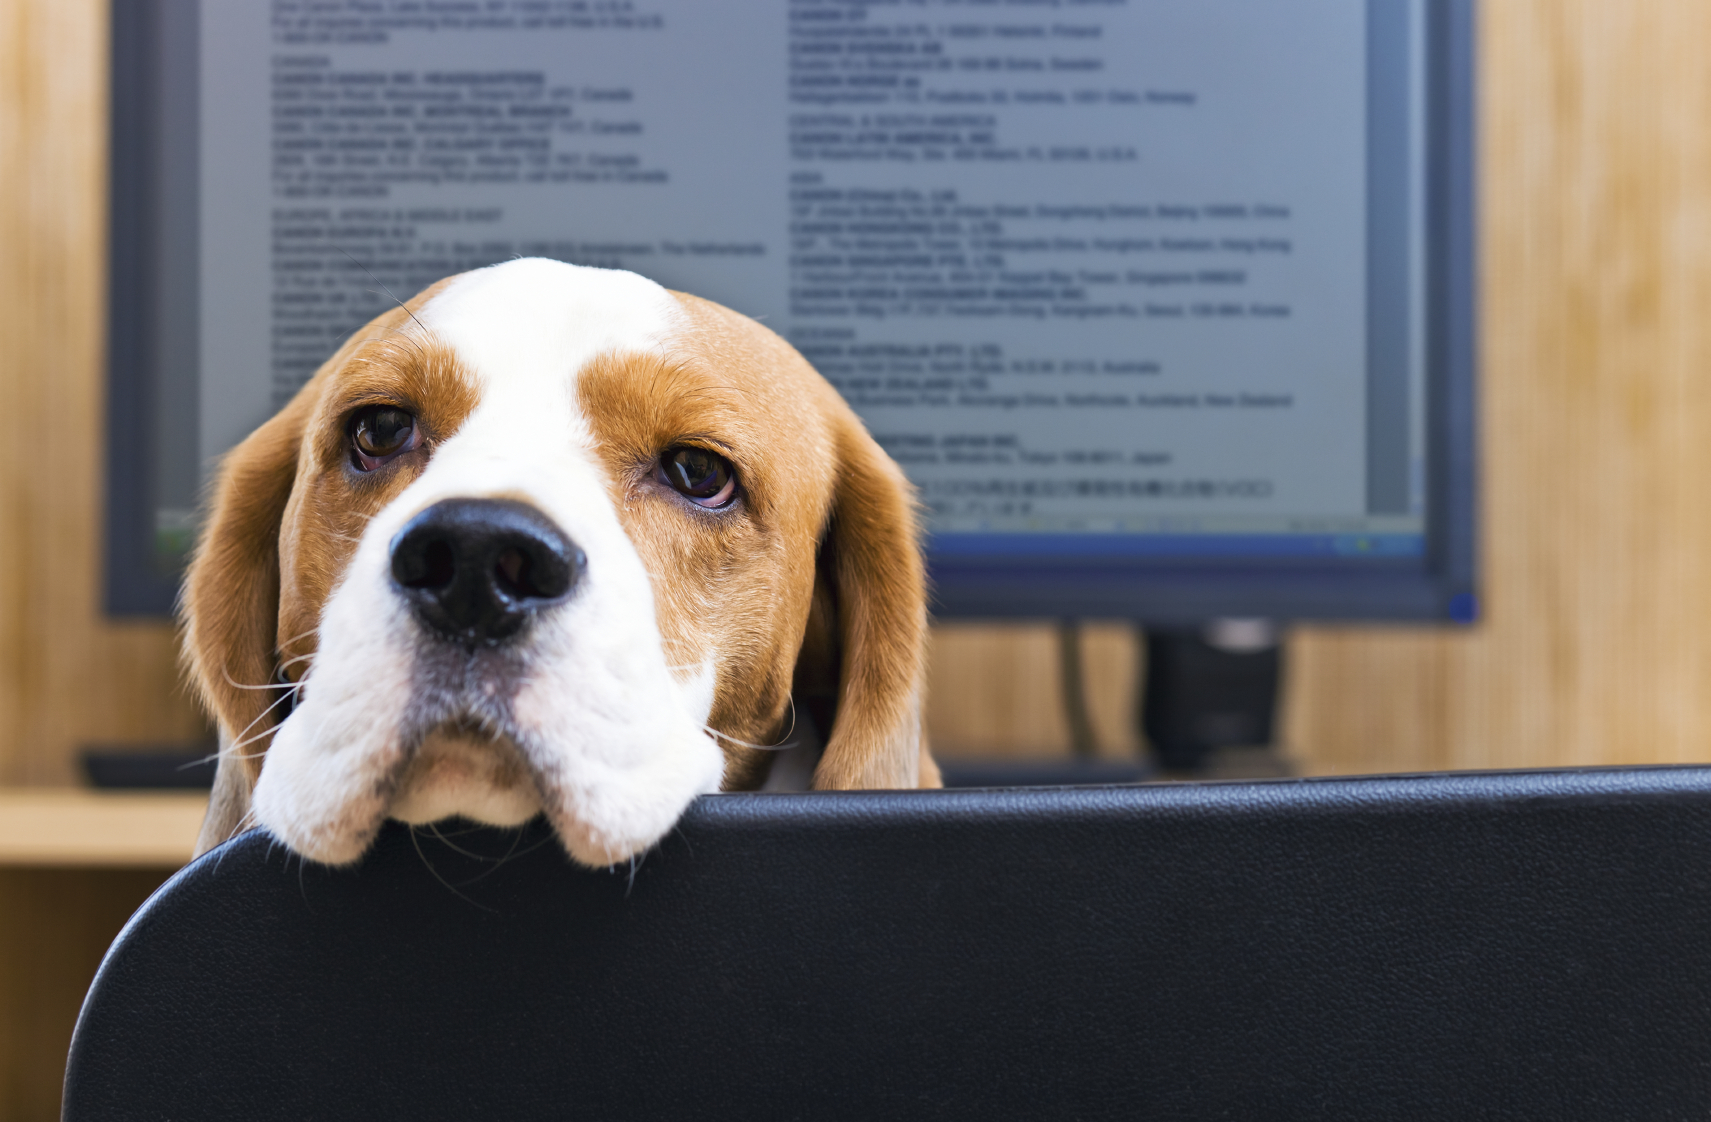 Do dogs at work actually improve employee engagement?